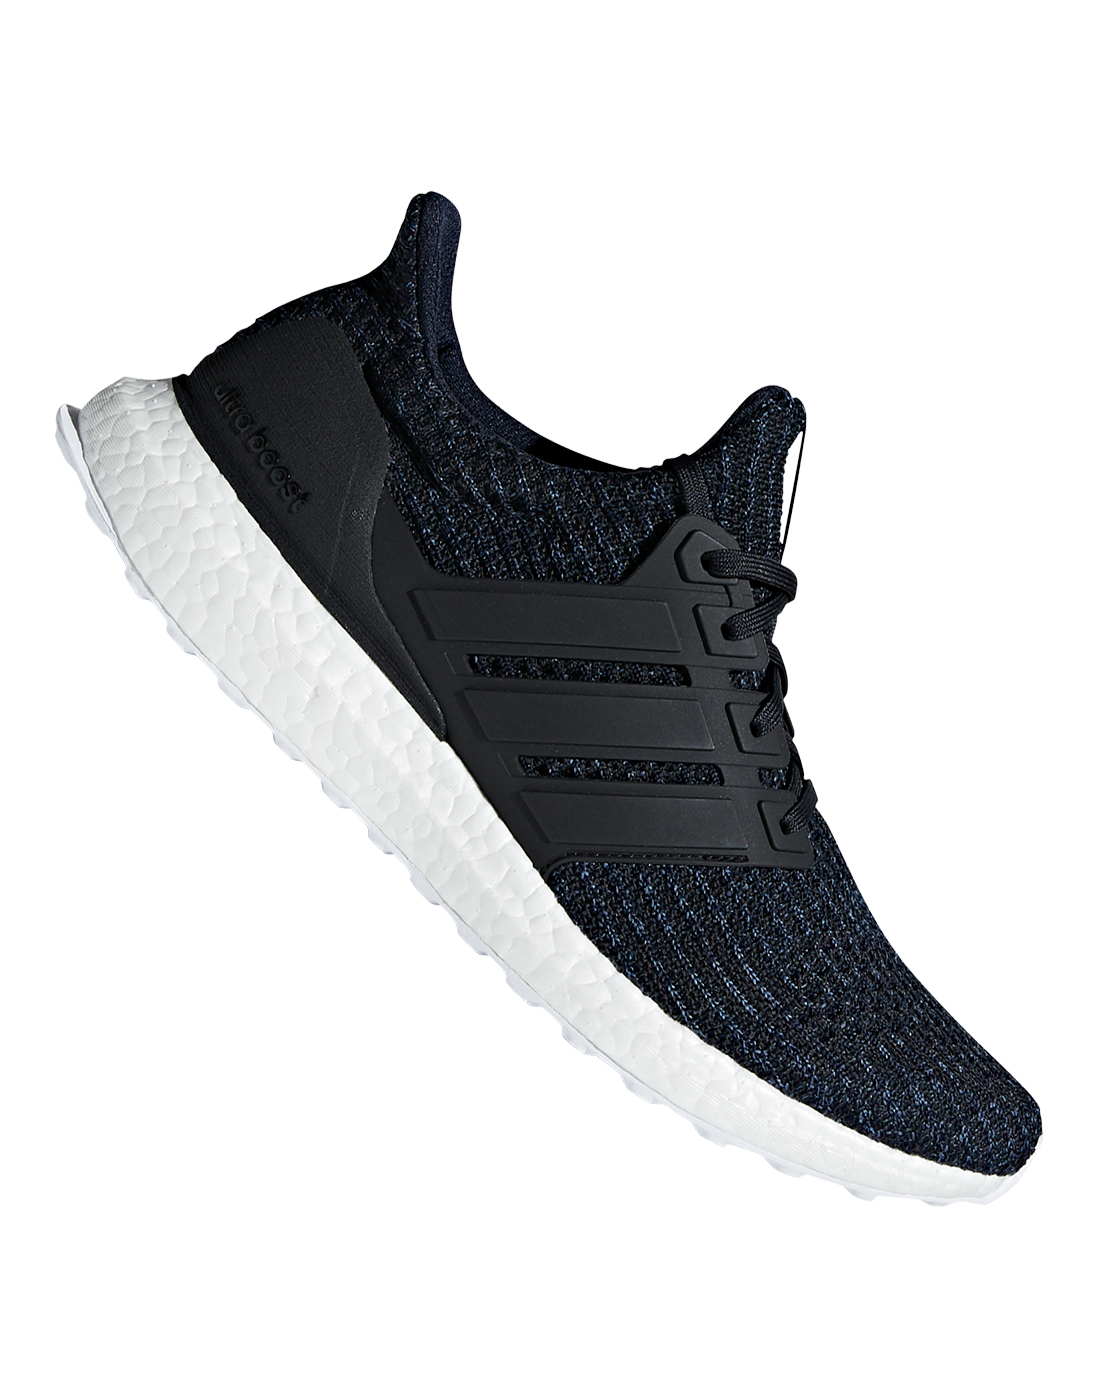 7cd5a956299e Men s adidas Ultraboost 4.0 Parley